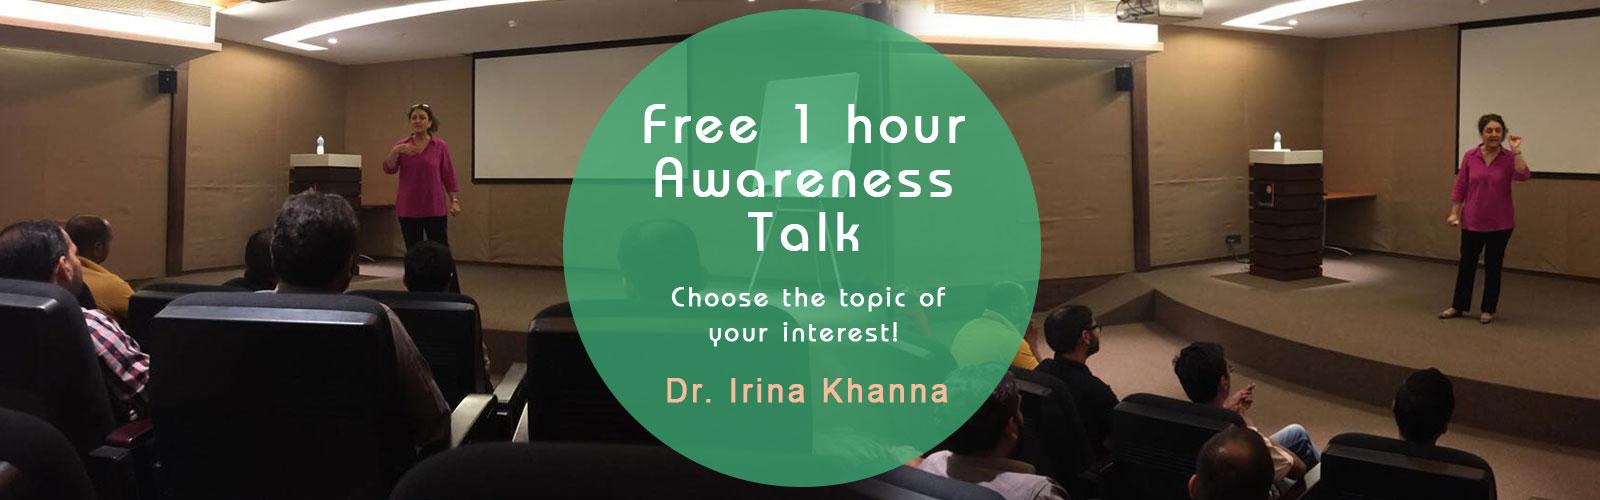 Free 1 hour Awareness Talk